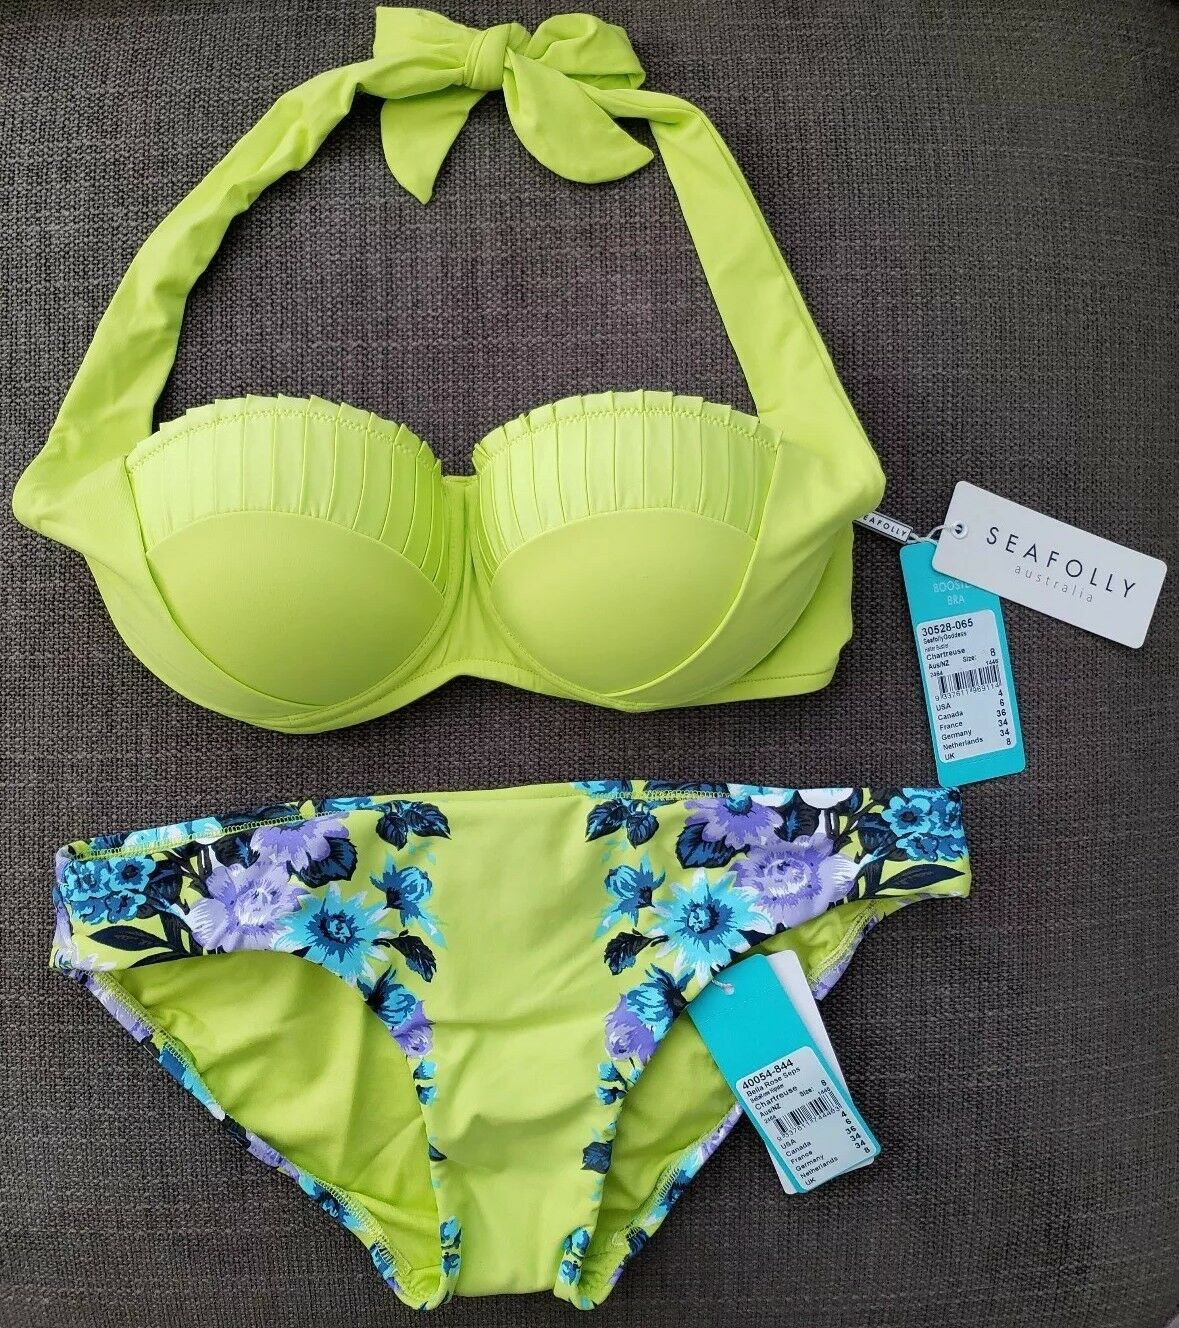 NWT 2-Pc Seafolly Goddess Halter Bustier & Bella pink Hipster, US 4, Chartreuse